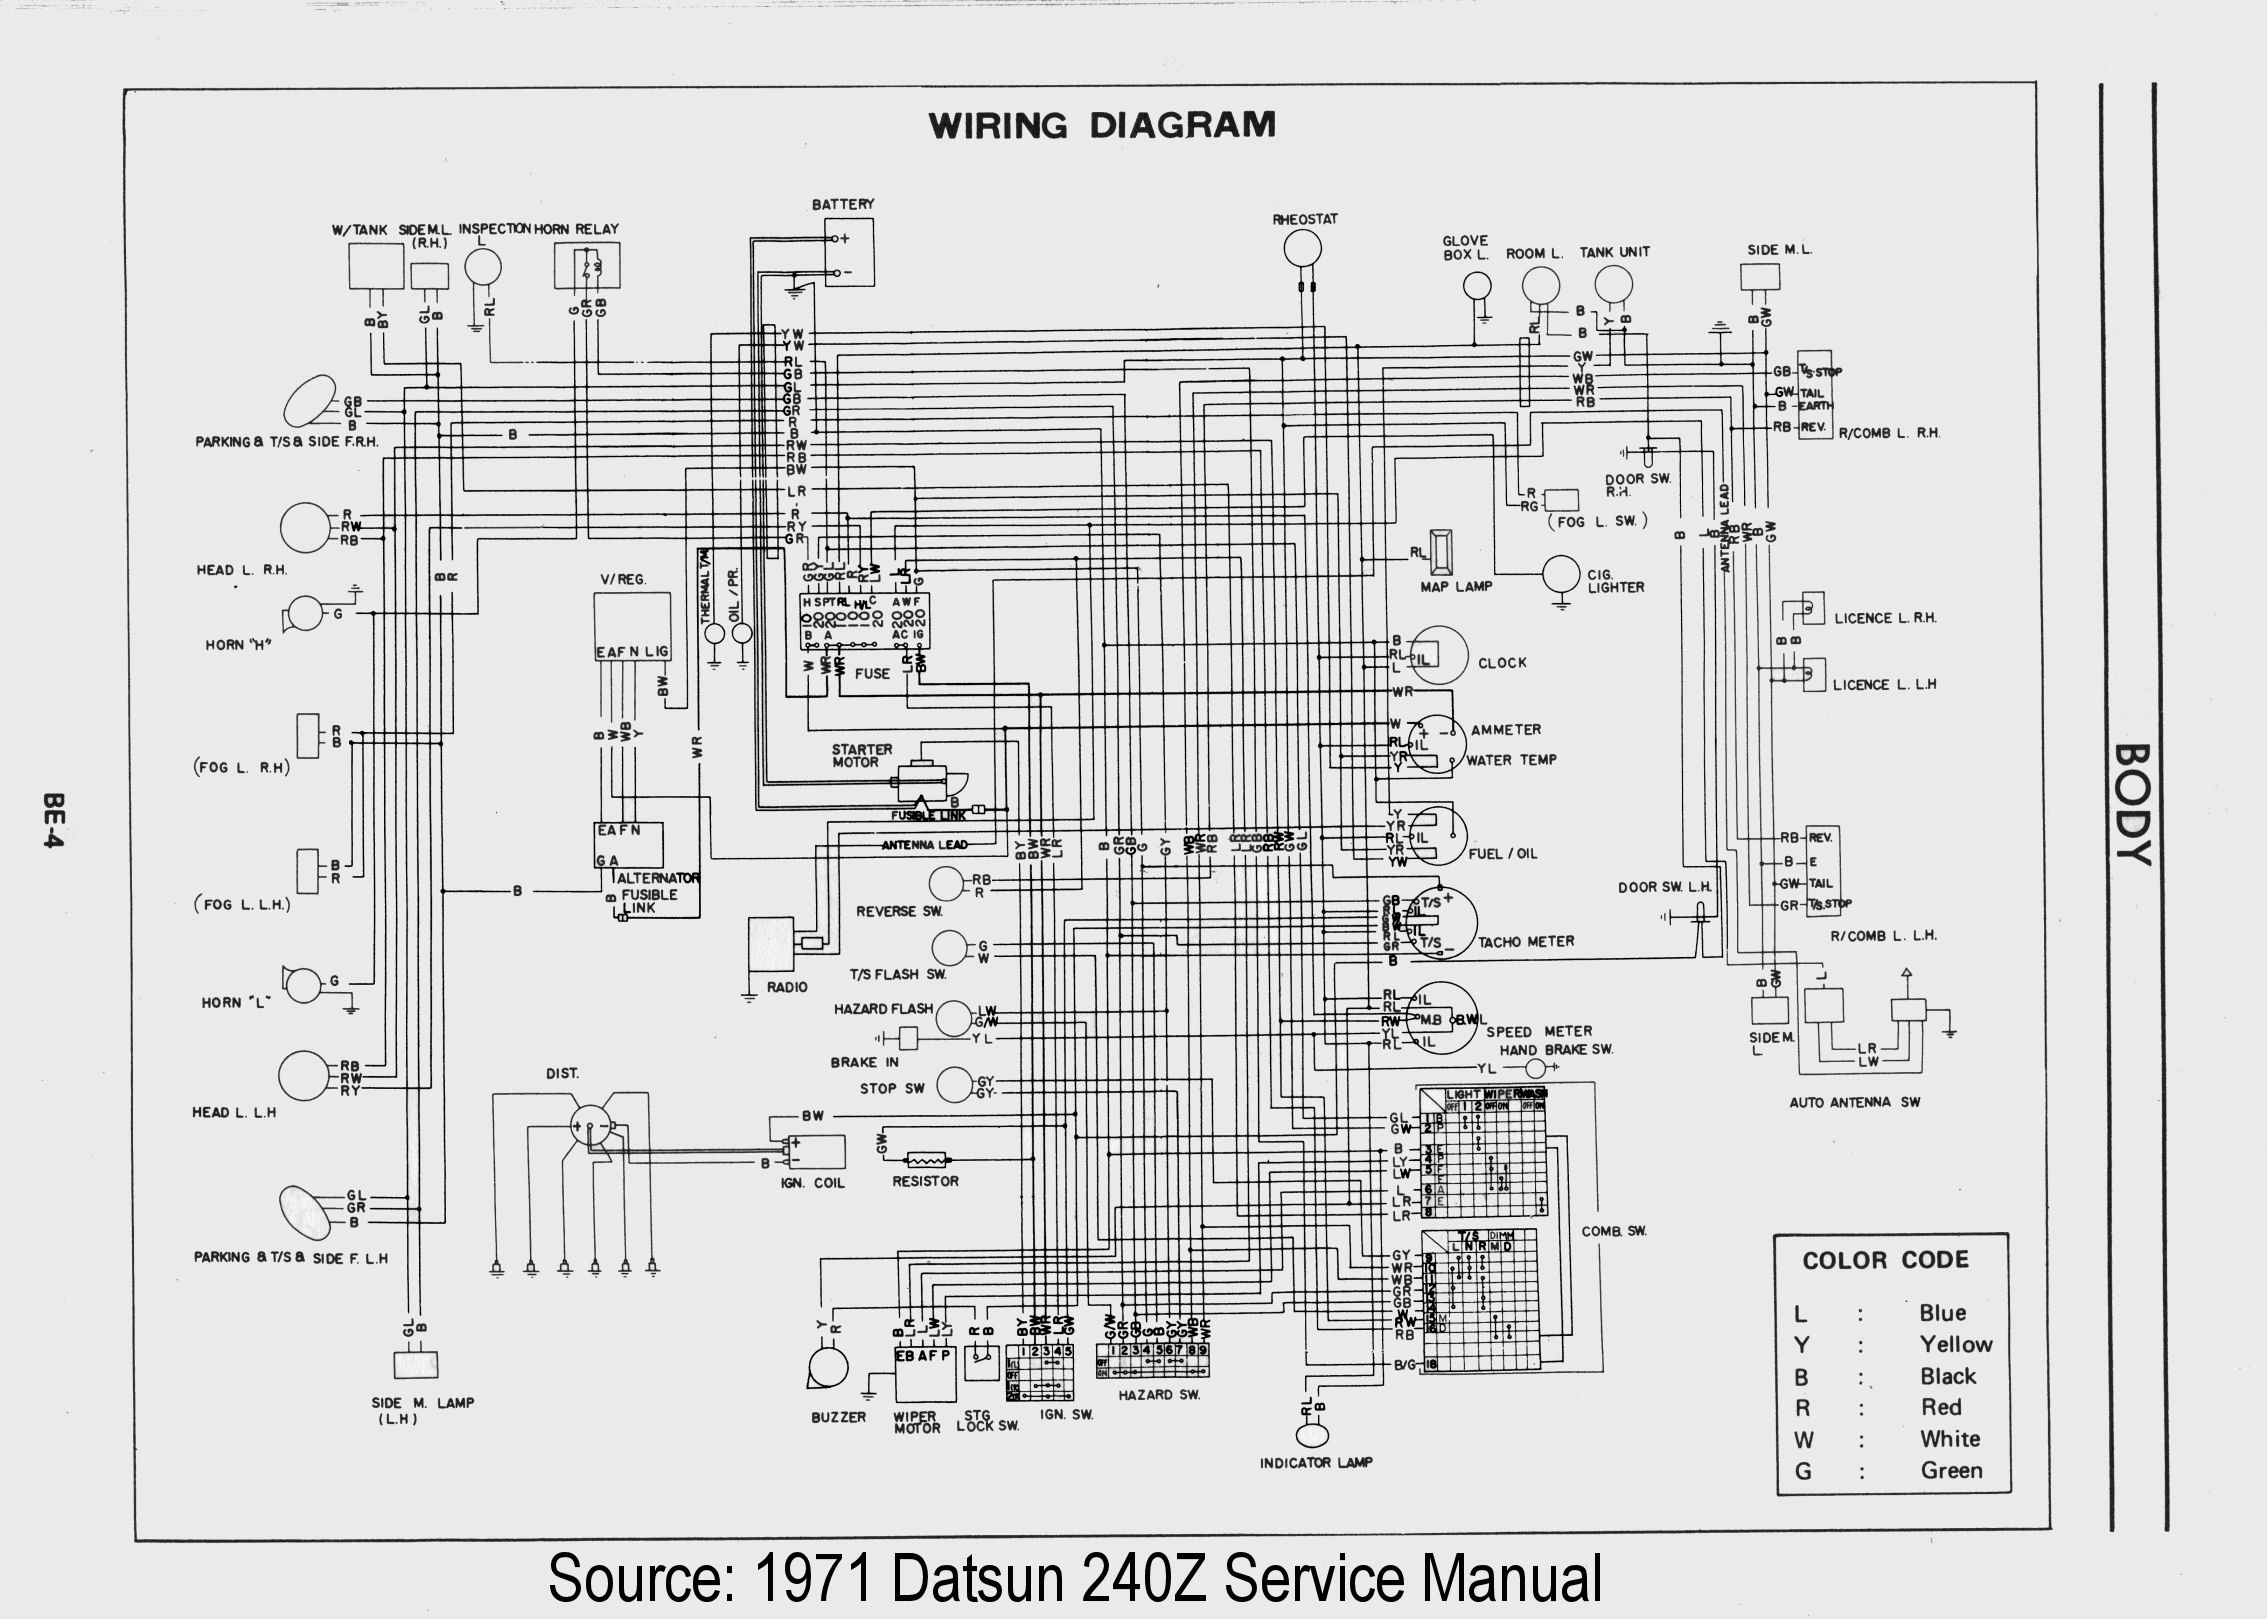 Wiring Diagram HiRes 2 280z wiring diagram 280z tachometer wiring \u2022 wiring diagrams j 1976 datsun 280z wiring diagram at panicattacktreatment.co